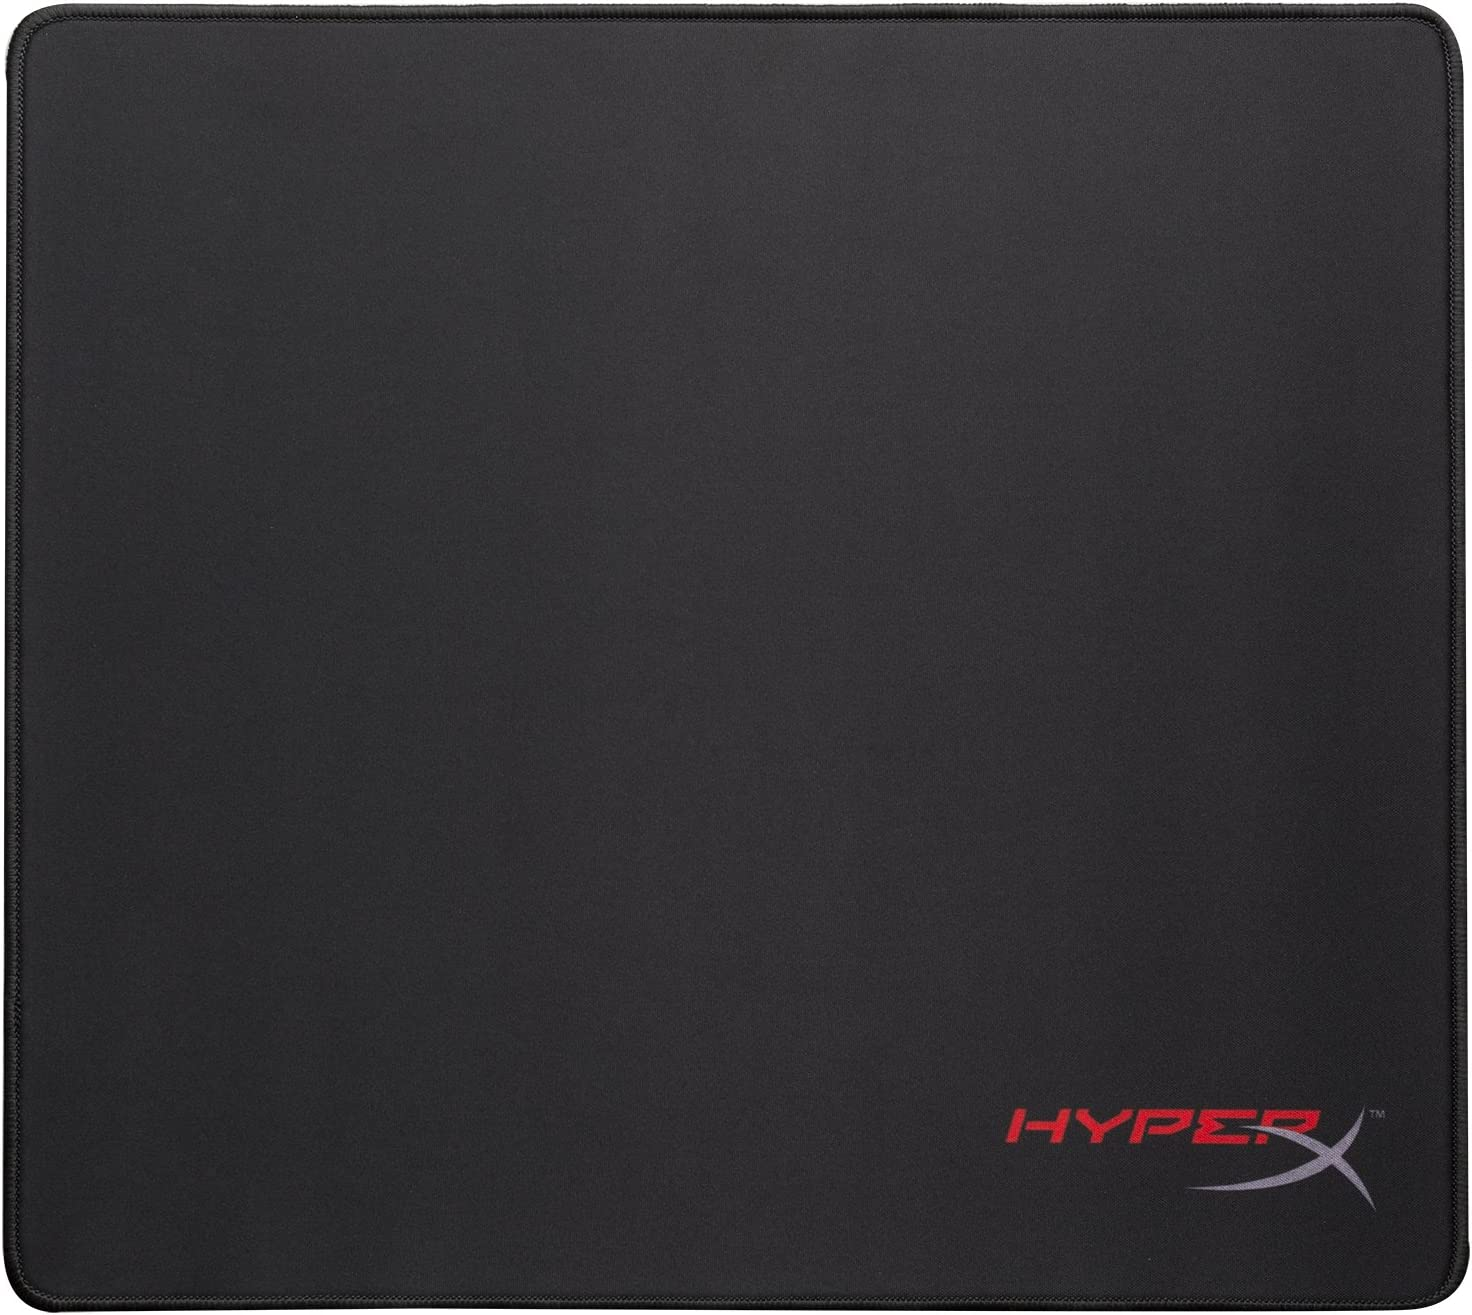 HyperX FURY S - Pro Gaming Mouse Pad, Cloth Surface Optimized for Precision, Stitched Anti-Fray Edges, Large 450x400x4mm